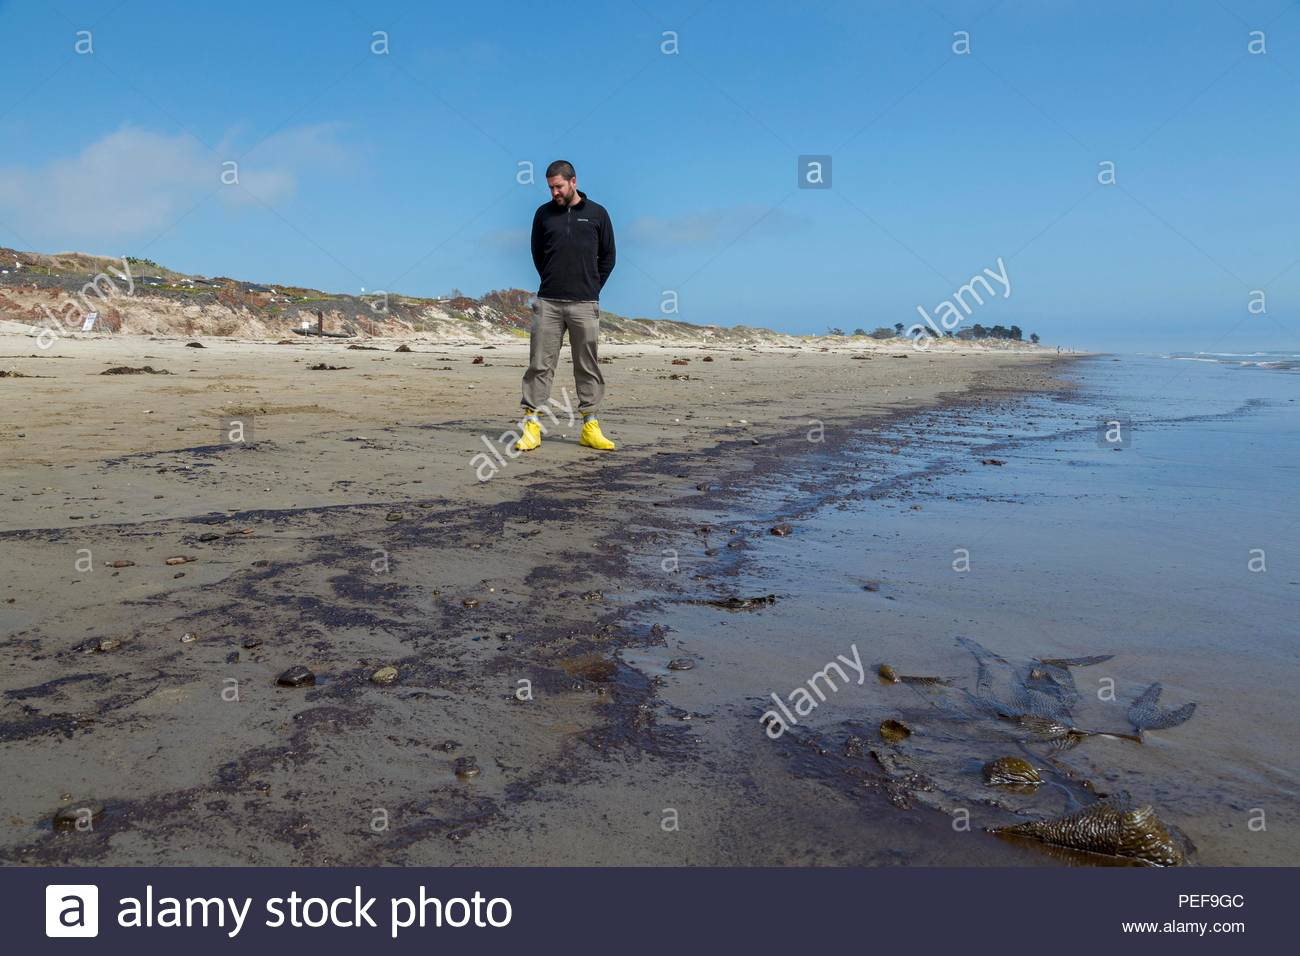 California Department of Fish & Wildlife, assessing oil washing ashore at Coal Point Reserve, one of the best remaining examples of a coastal-strand environment in Southern California, that protects a wide variety of coastal and estuarine habitats. - Stock Image